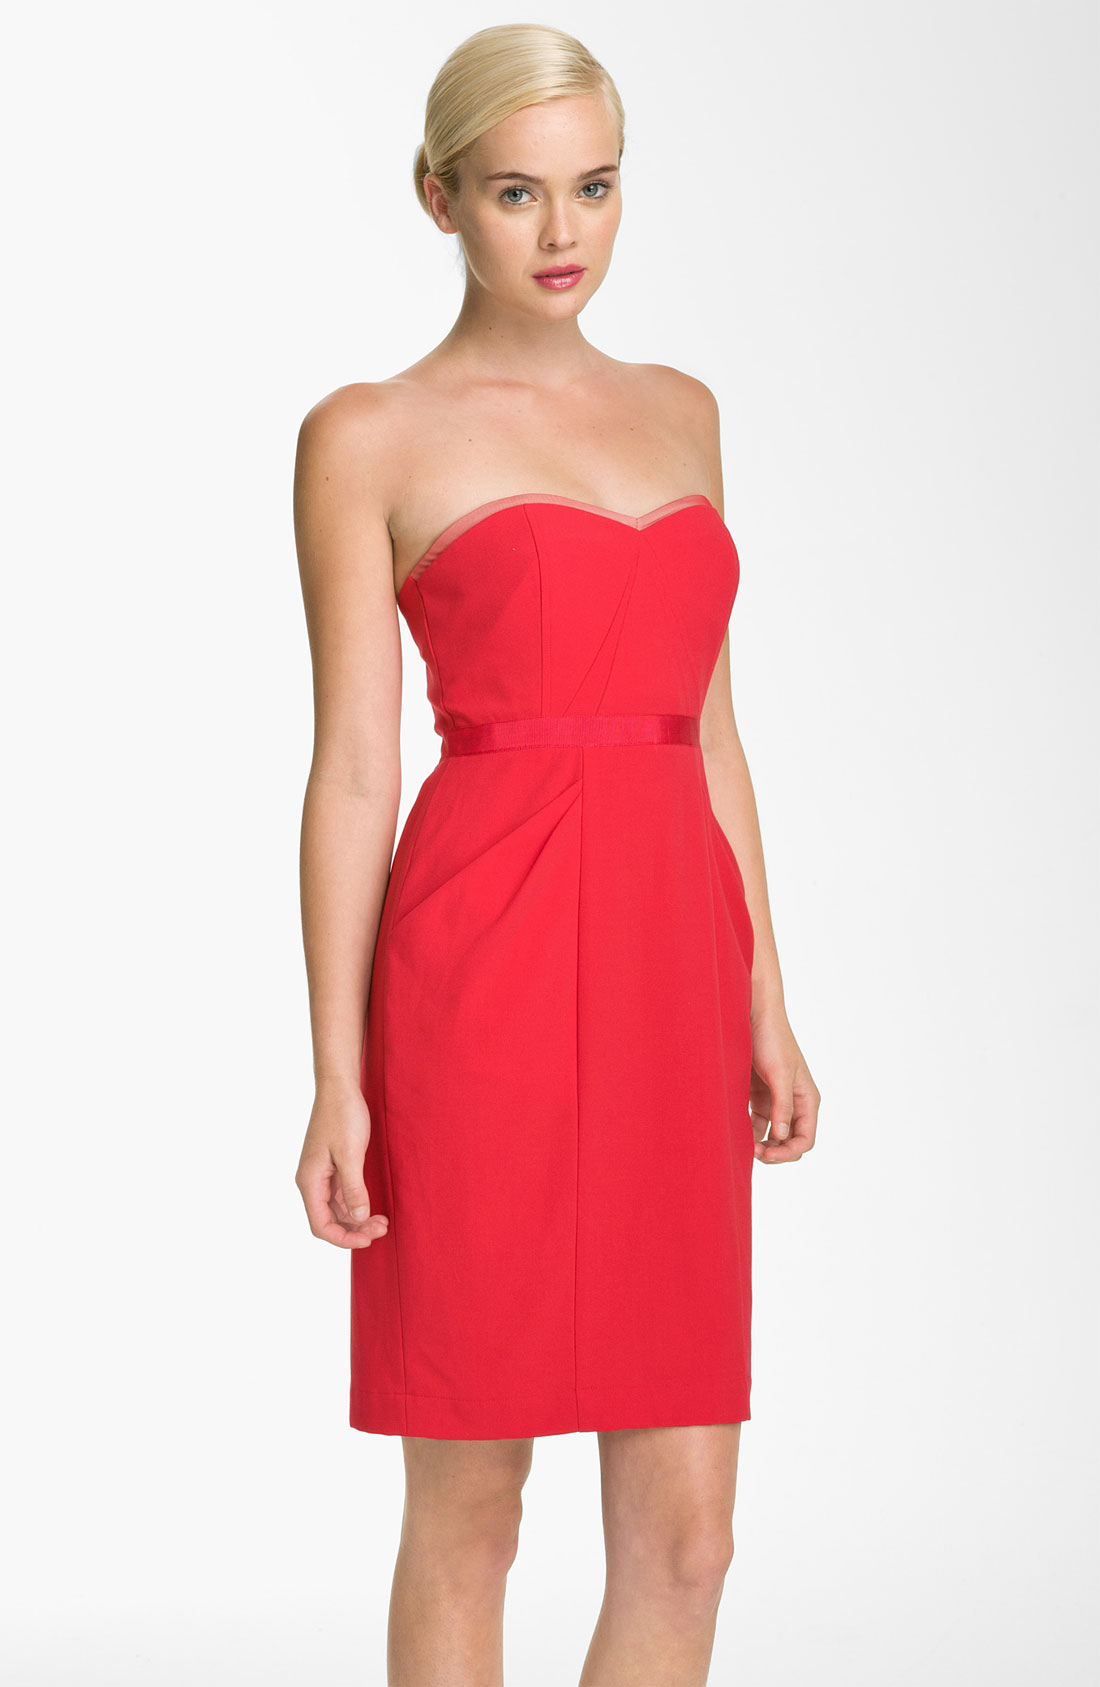 Red Sweetheart Neckline Dress